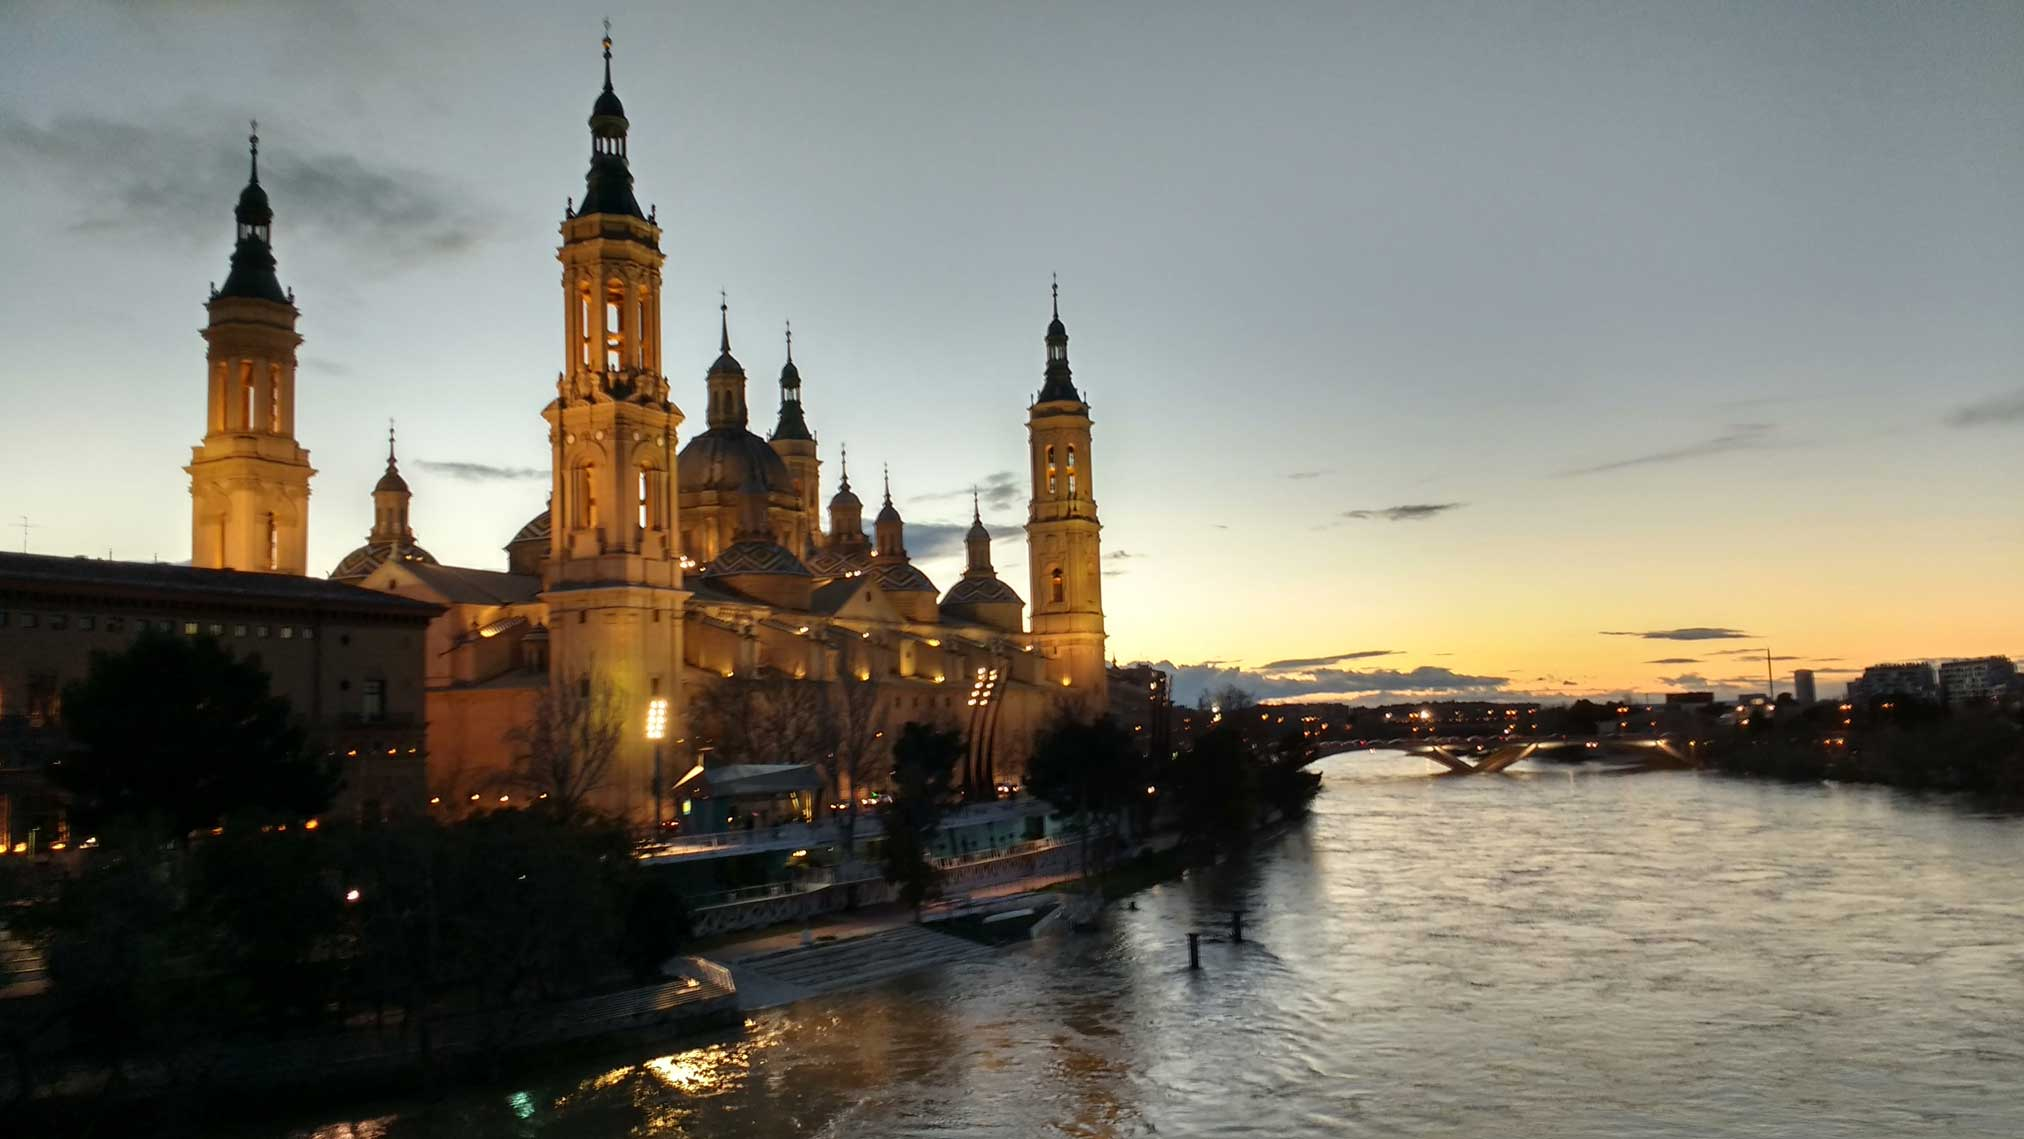 Basilica of our lady of the pilar at night in Zaragoza.